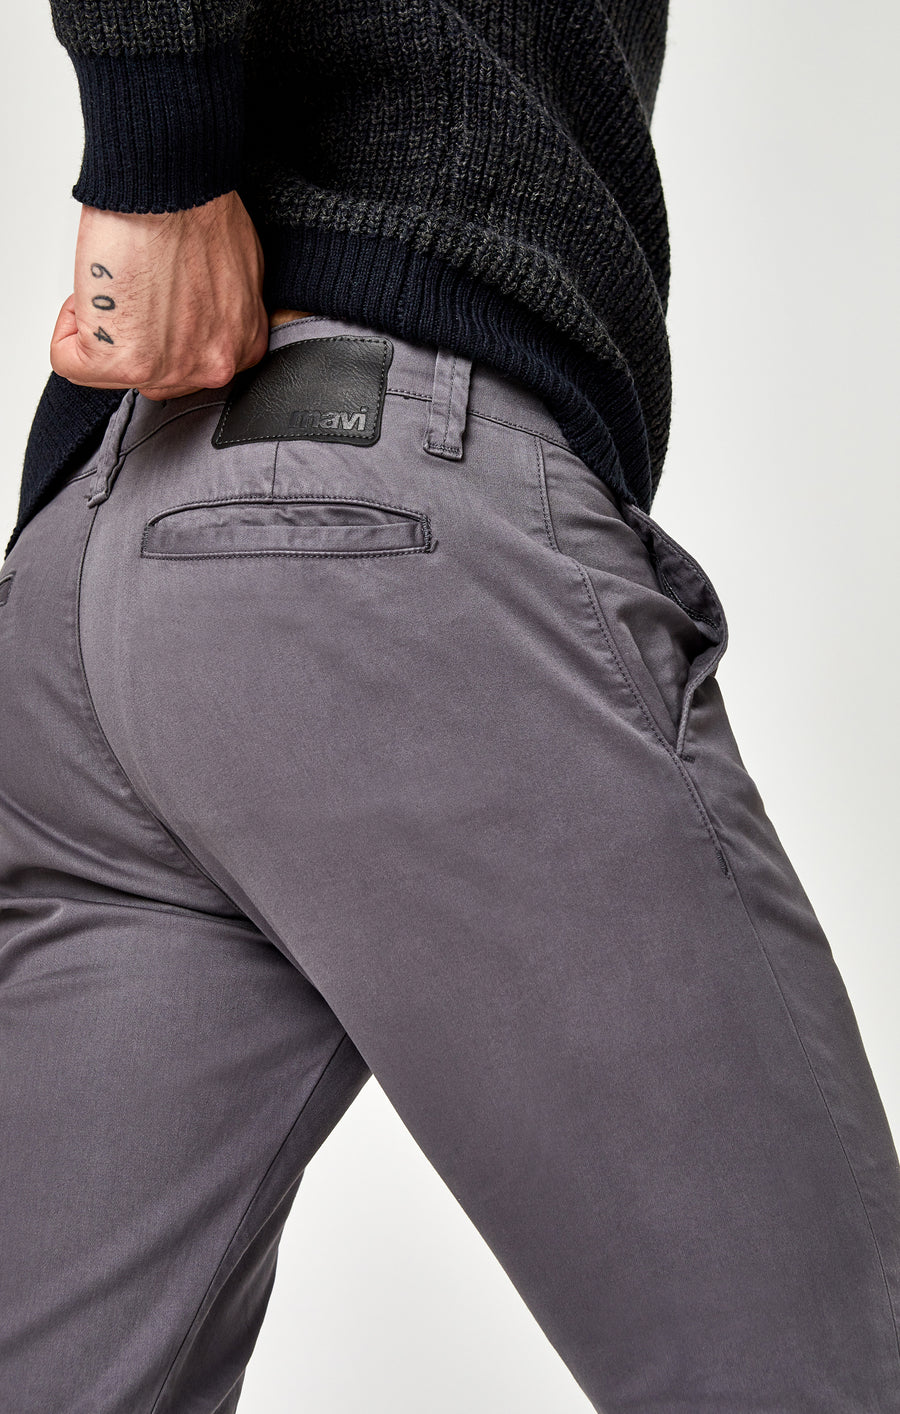 JOHNNY SLIM LEG CHINO IN STONE GREY TWILL - Mavi Jeans